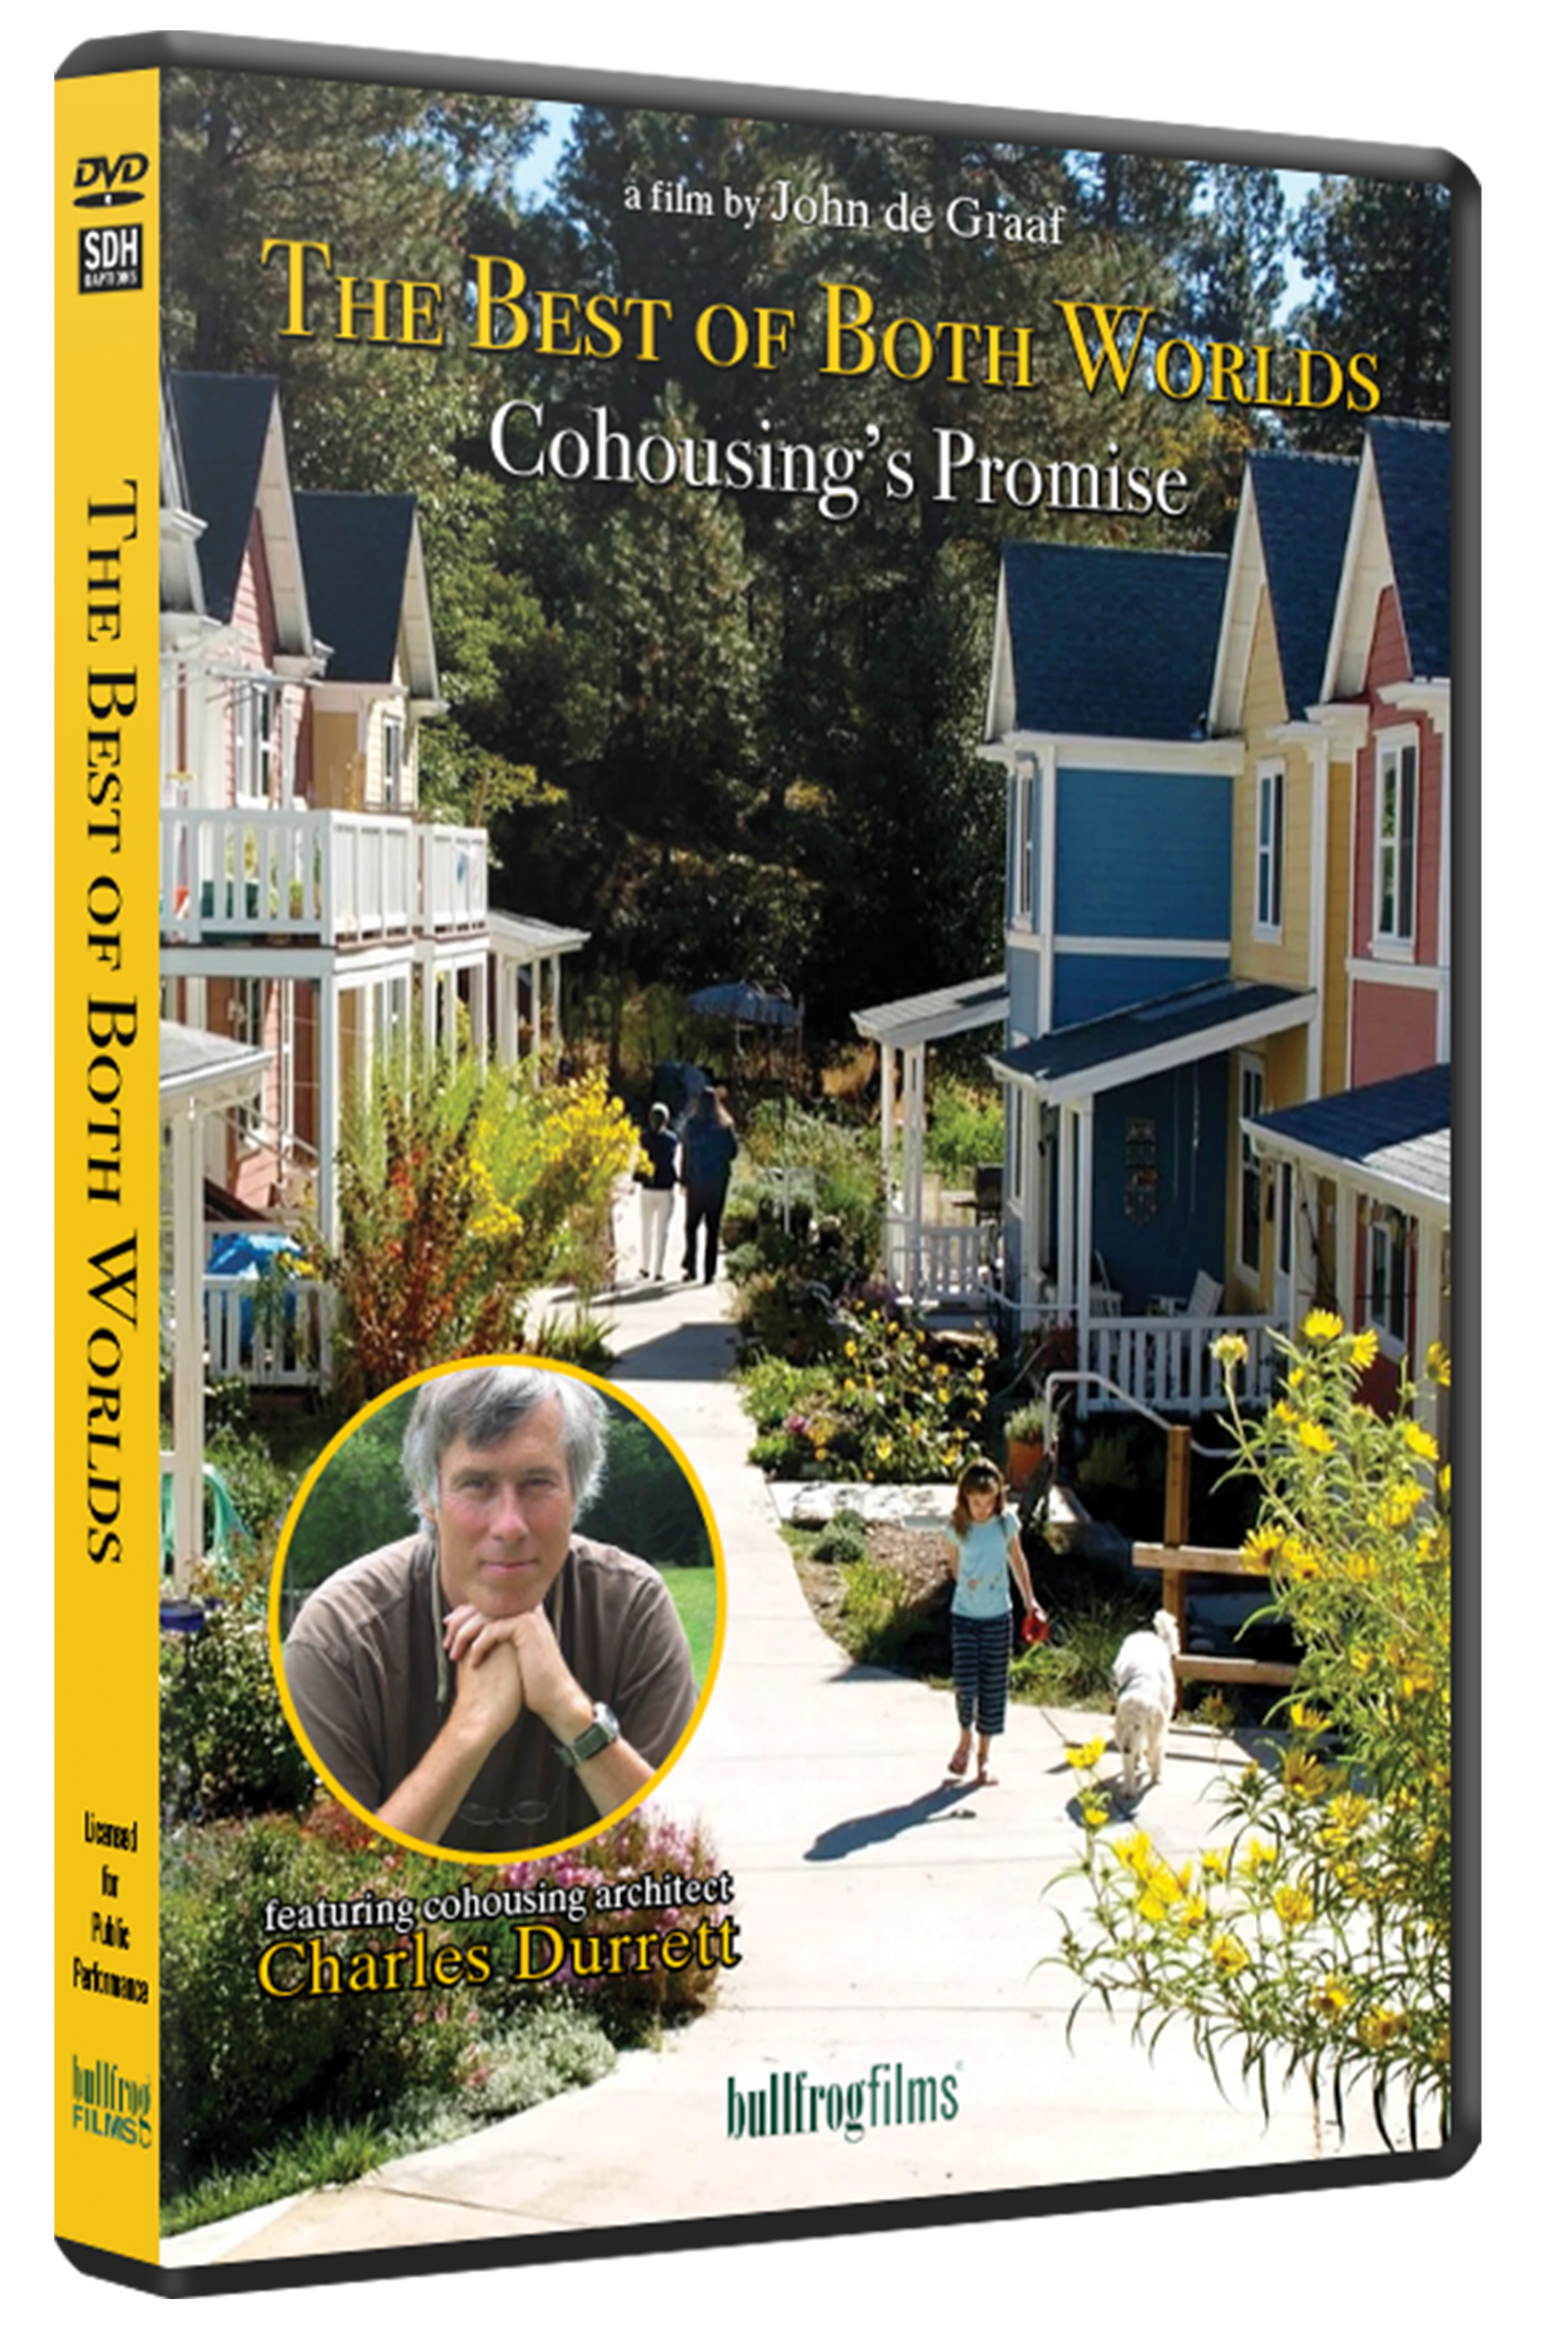 THE BEST OF BOTH WORLDS: COHOUSING'S PROMISE